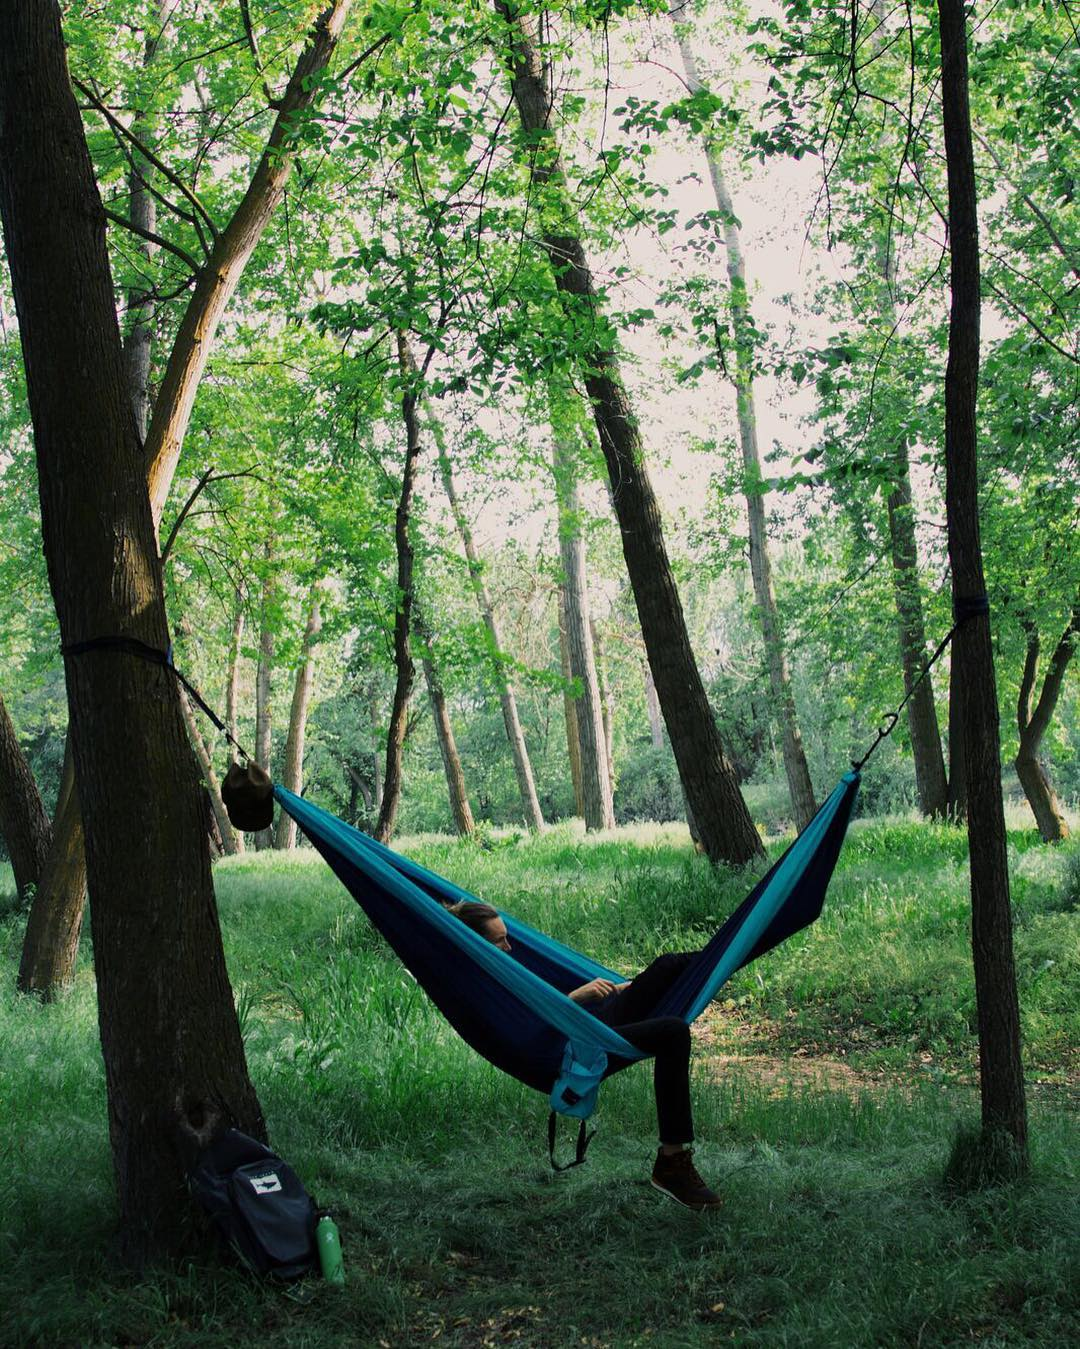 Everyone likes free hammocks - right?! We're giving away that & more, check the link in our bio. Giveaway ends tomorrow at midnight!